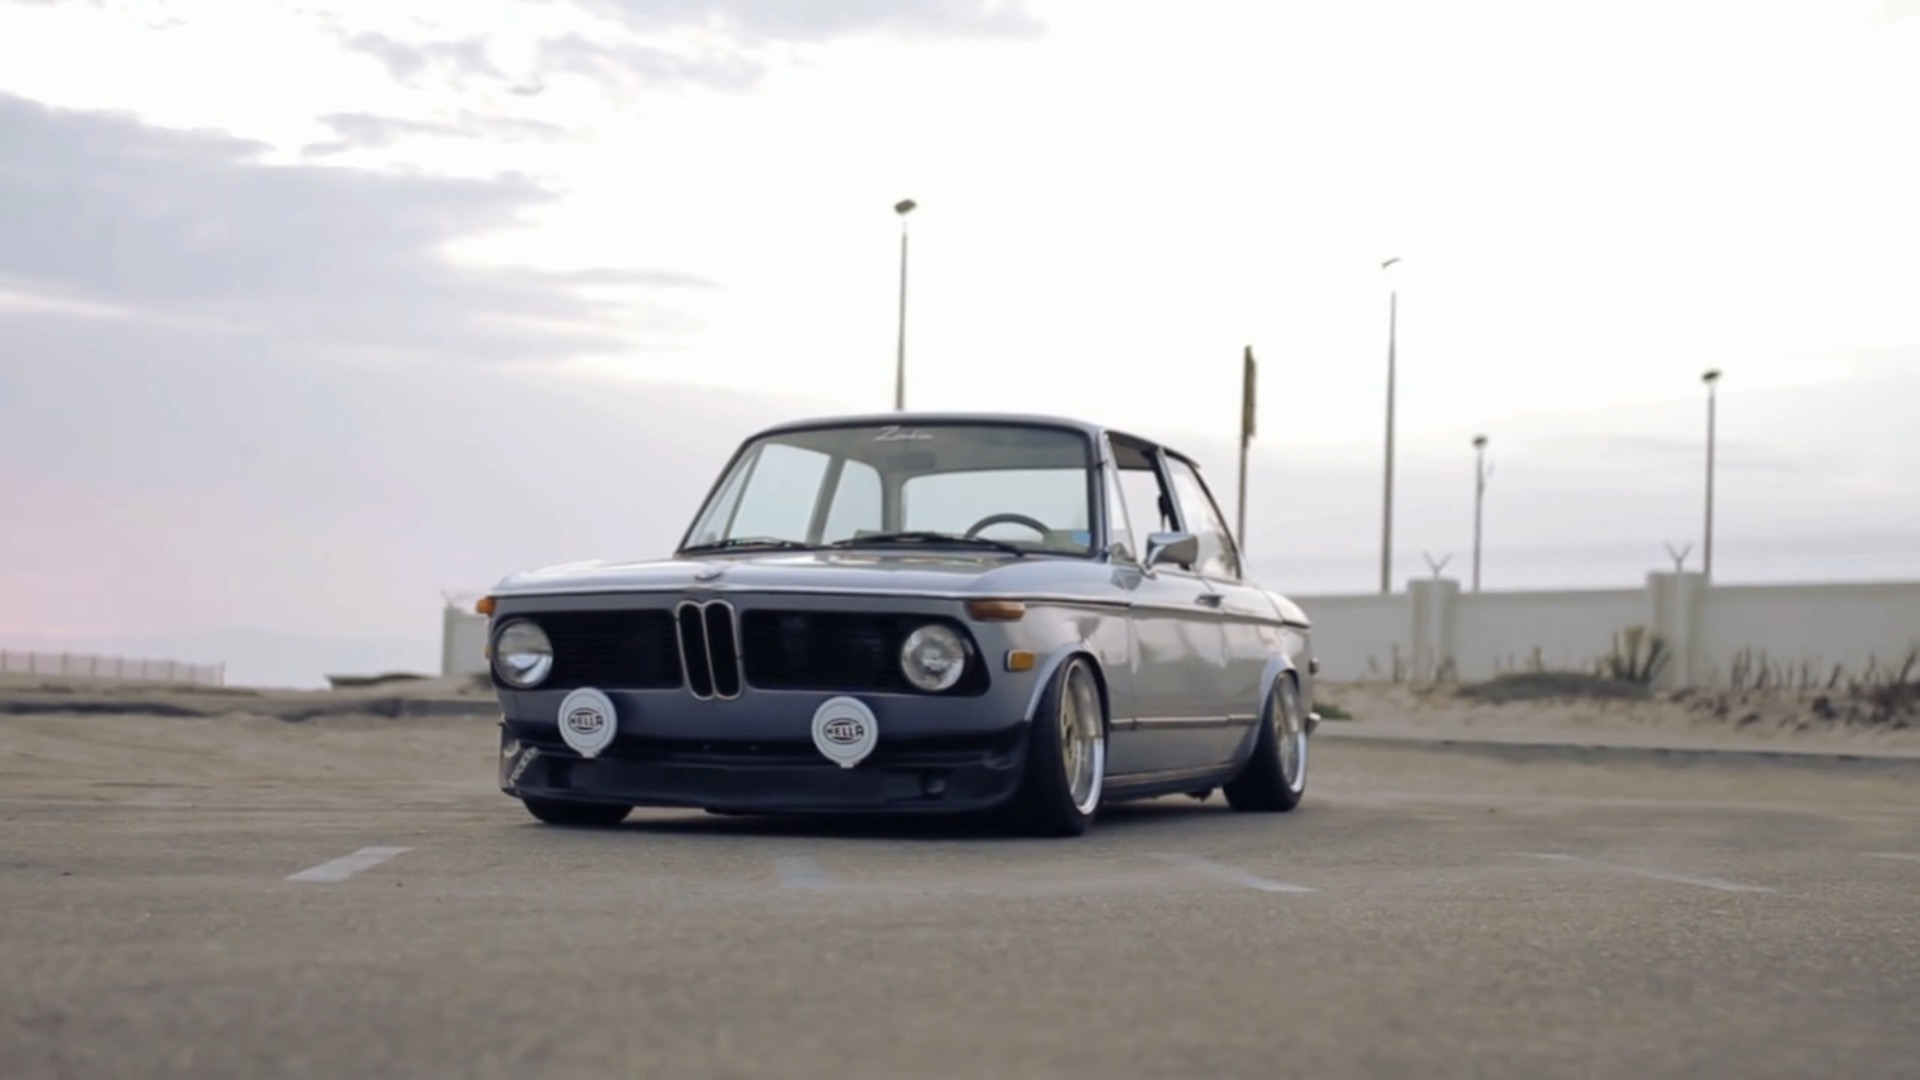 stunning bmw 2002 is somebody s daily driver autoevolution. Black Bedroom Furniture Sets. Home Design Ideas